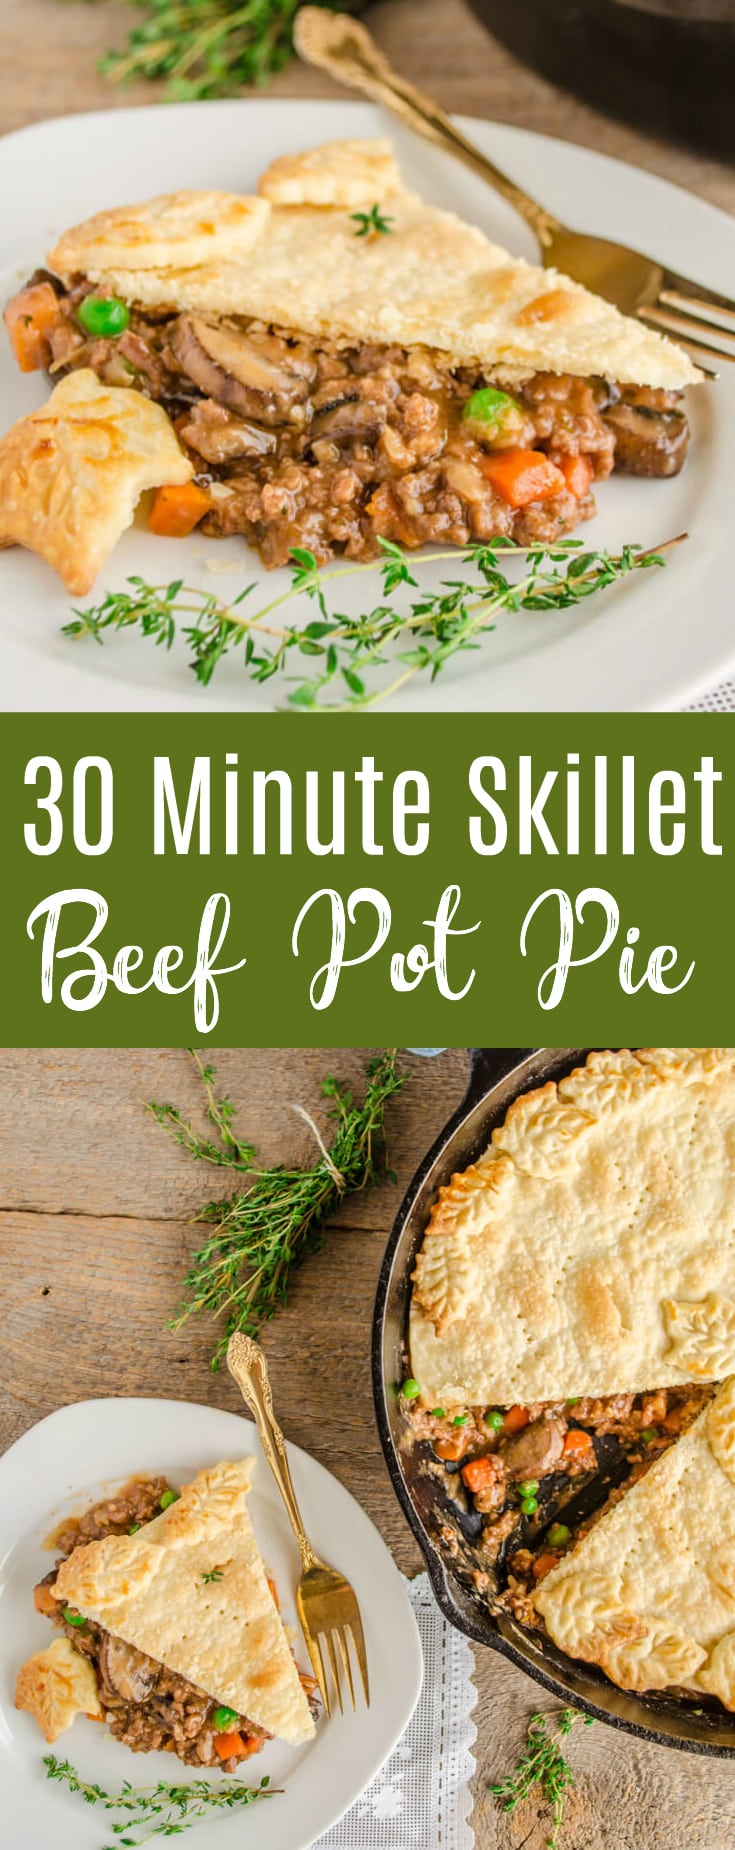 30 Minute Skillet Beef Pot Pie is a quick and hearty one skillet dinner that is packed with flavor; made easy with store bought pie crust & frozen veggies.